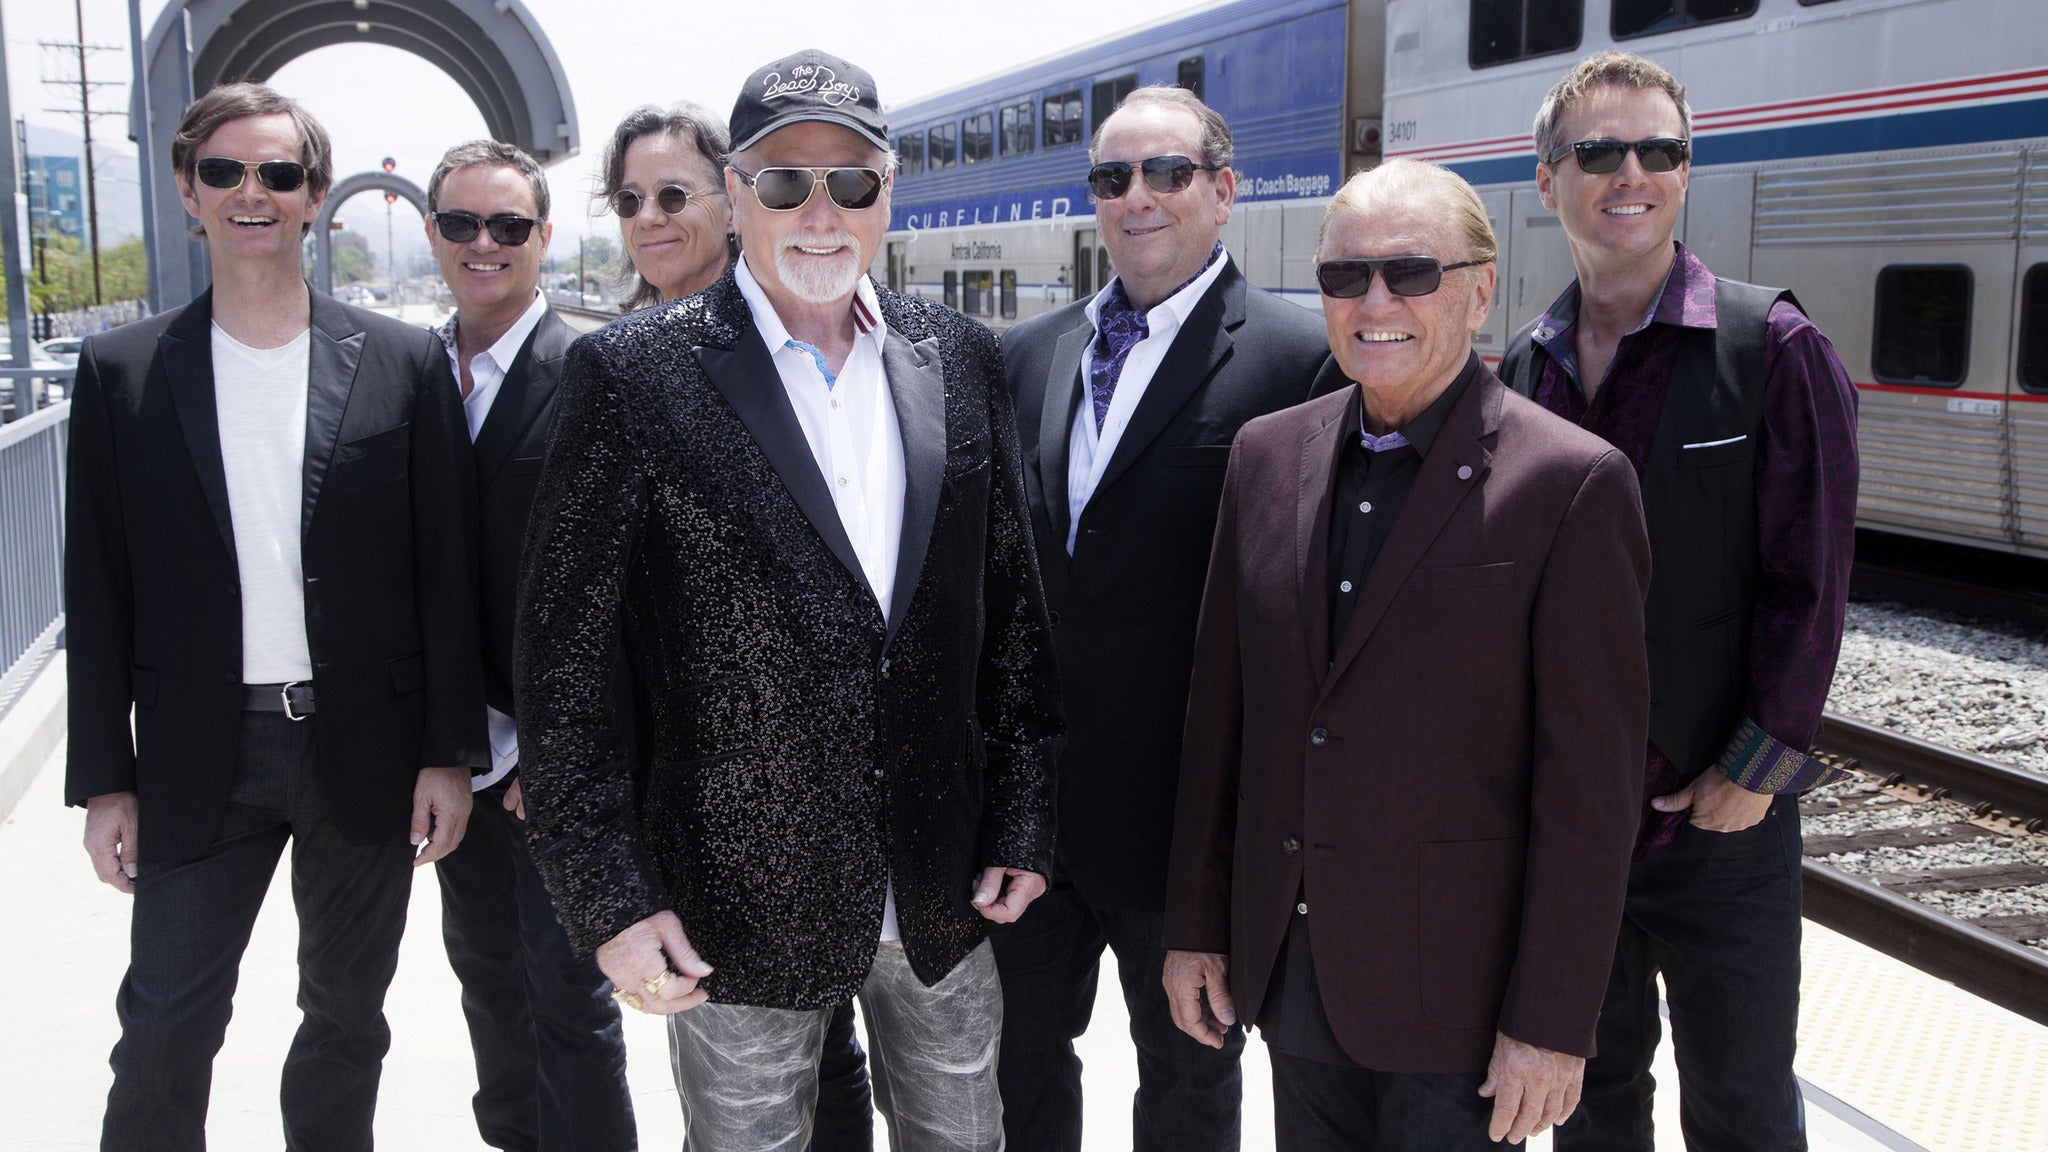 The Beach Boys at Verizon Wireless Center